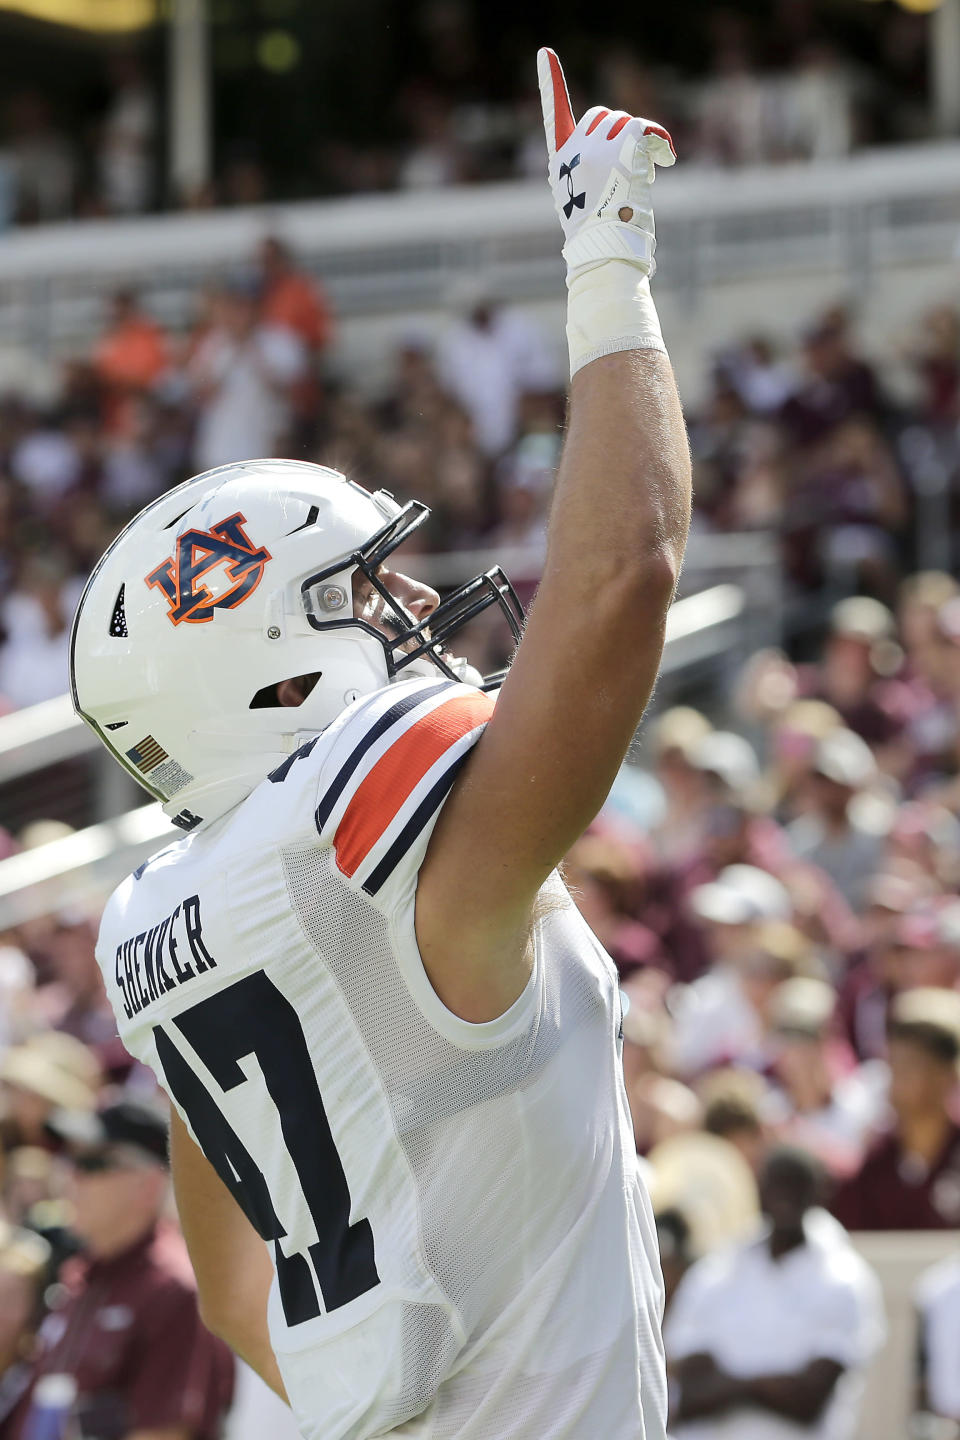 Auburn tight end John Samuel Shenker (47) reacts after scoring a touchdown against Texas A&M during the first half of an NCAA college football game, Saturday, Sept. 21, 2019, in College Station, Texas. (AP Photo/Sam Craft)